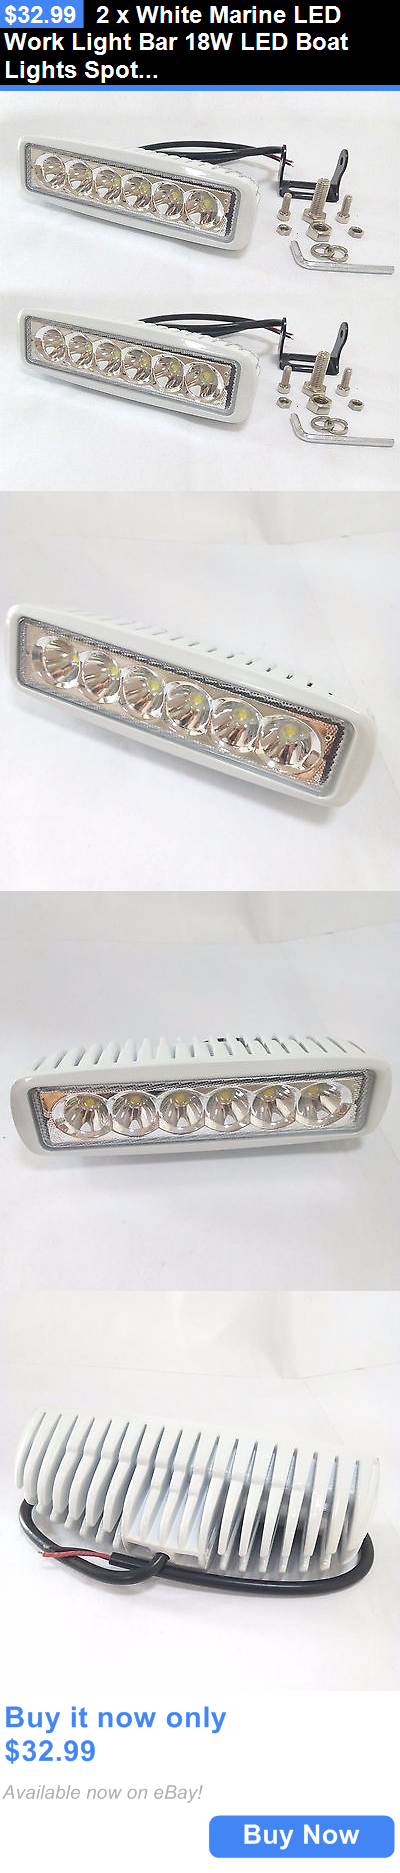 Boat Parts 2 X White Marine Led Work Light Bar 18w Led Boat Lights Spot Beam 30 Degree Buy It Now Only 32 99 Led Boat Lights Boat Lights Led Work Light